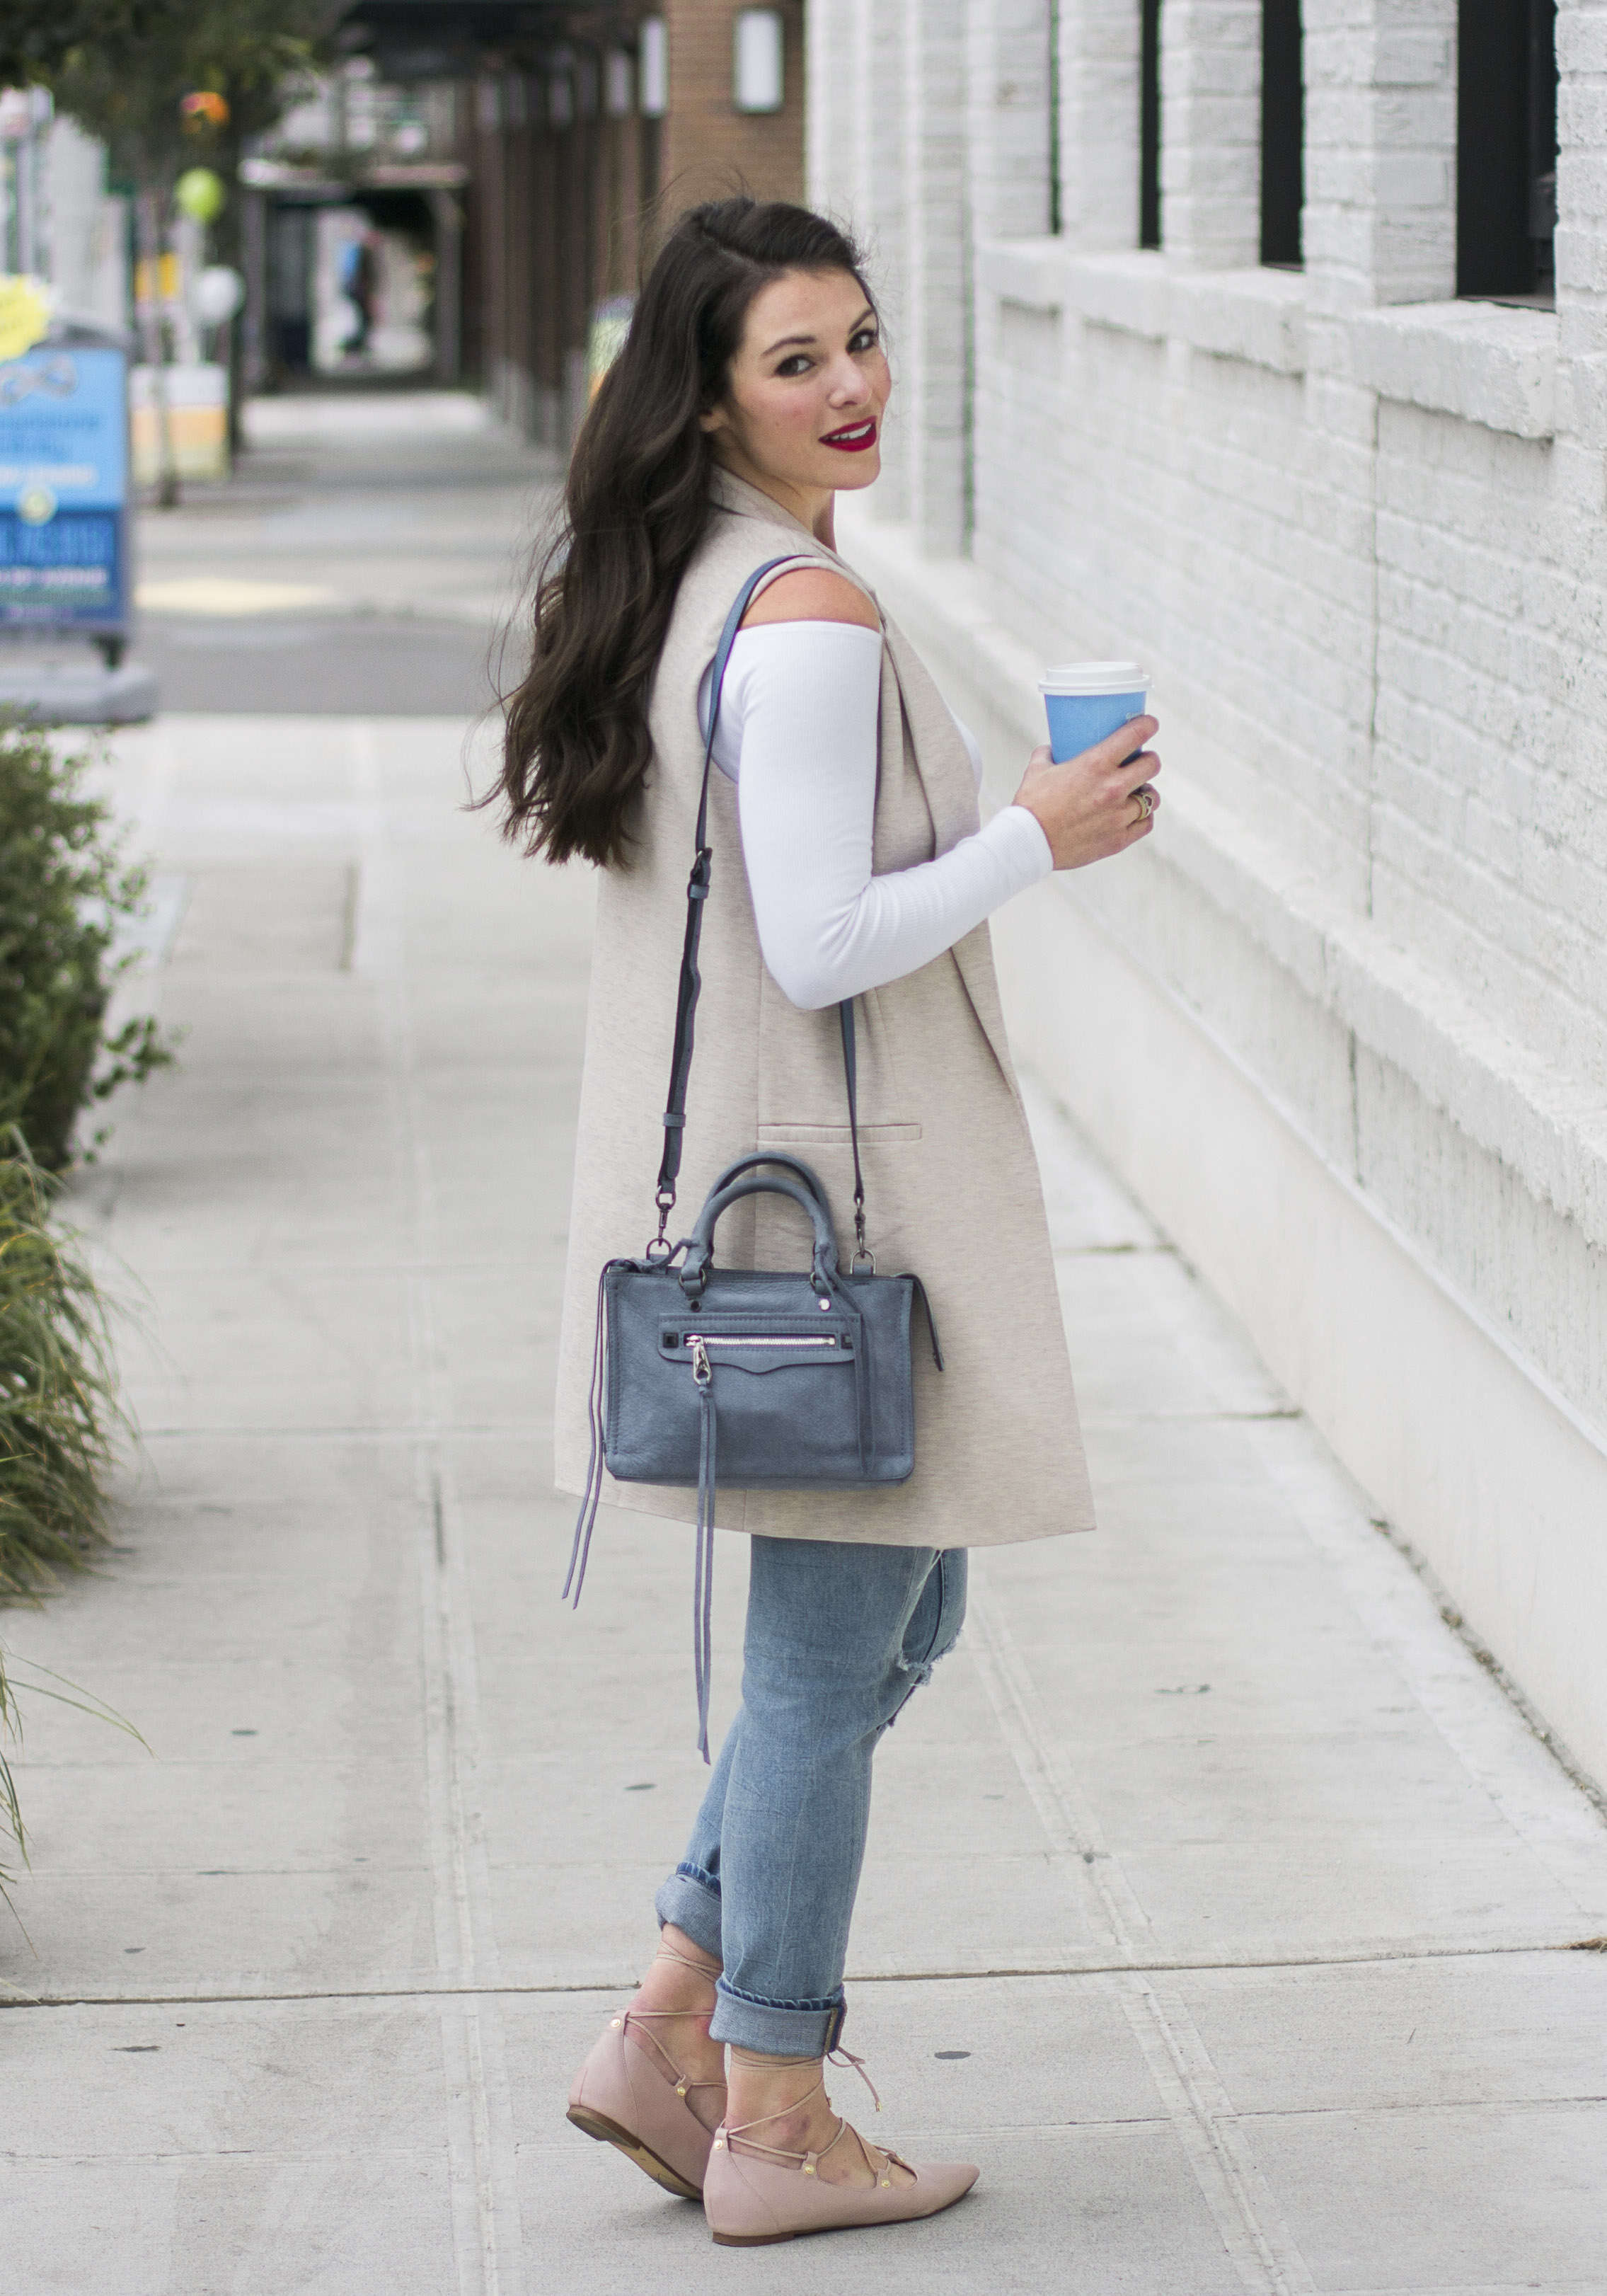 How to wear the off the shoulder trend this fall, ASOS off the shoulder top, Leith Ponte Sleeveless Vest, Blank NYC distressed skinny jeans, Owen lace-up ghillie flats, Rebecca Minkoff Micro Regan Satchel.